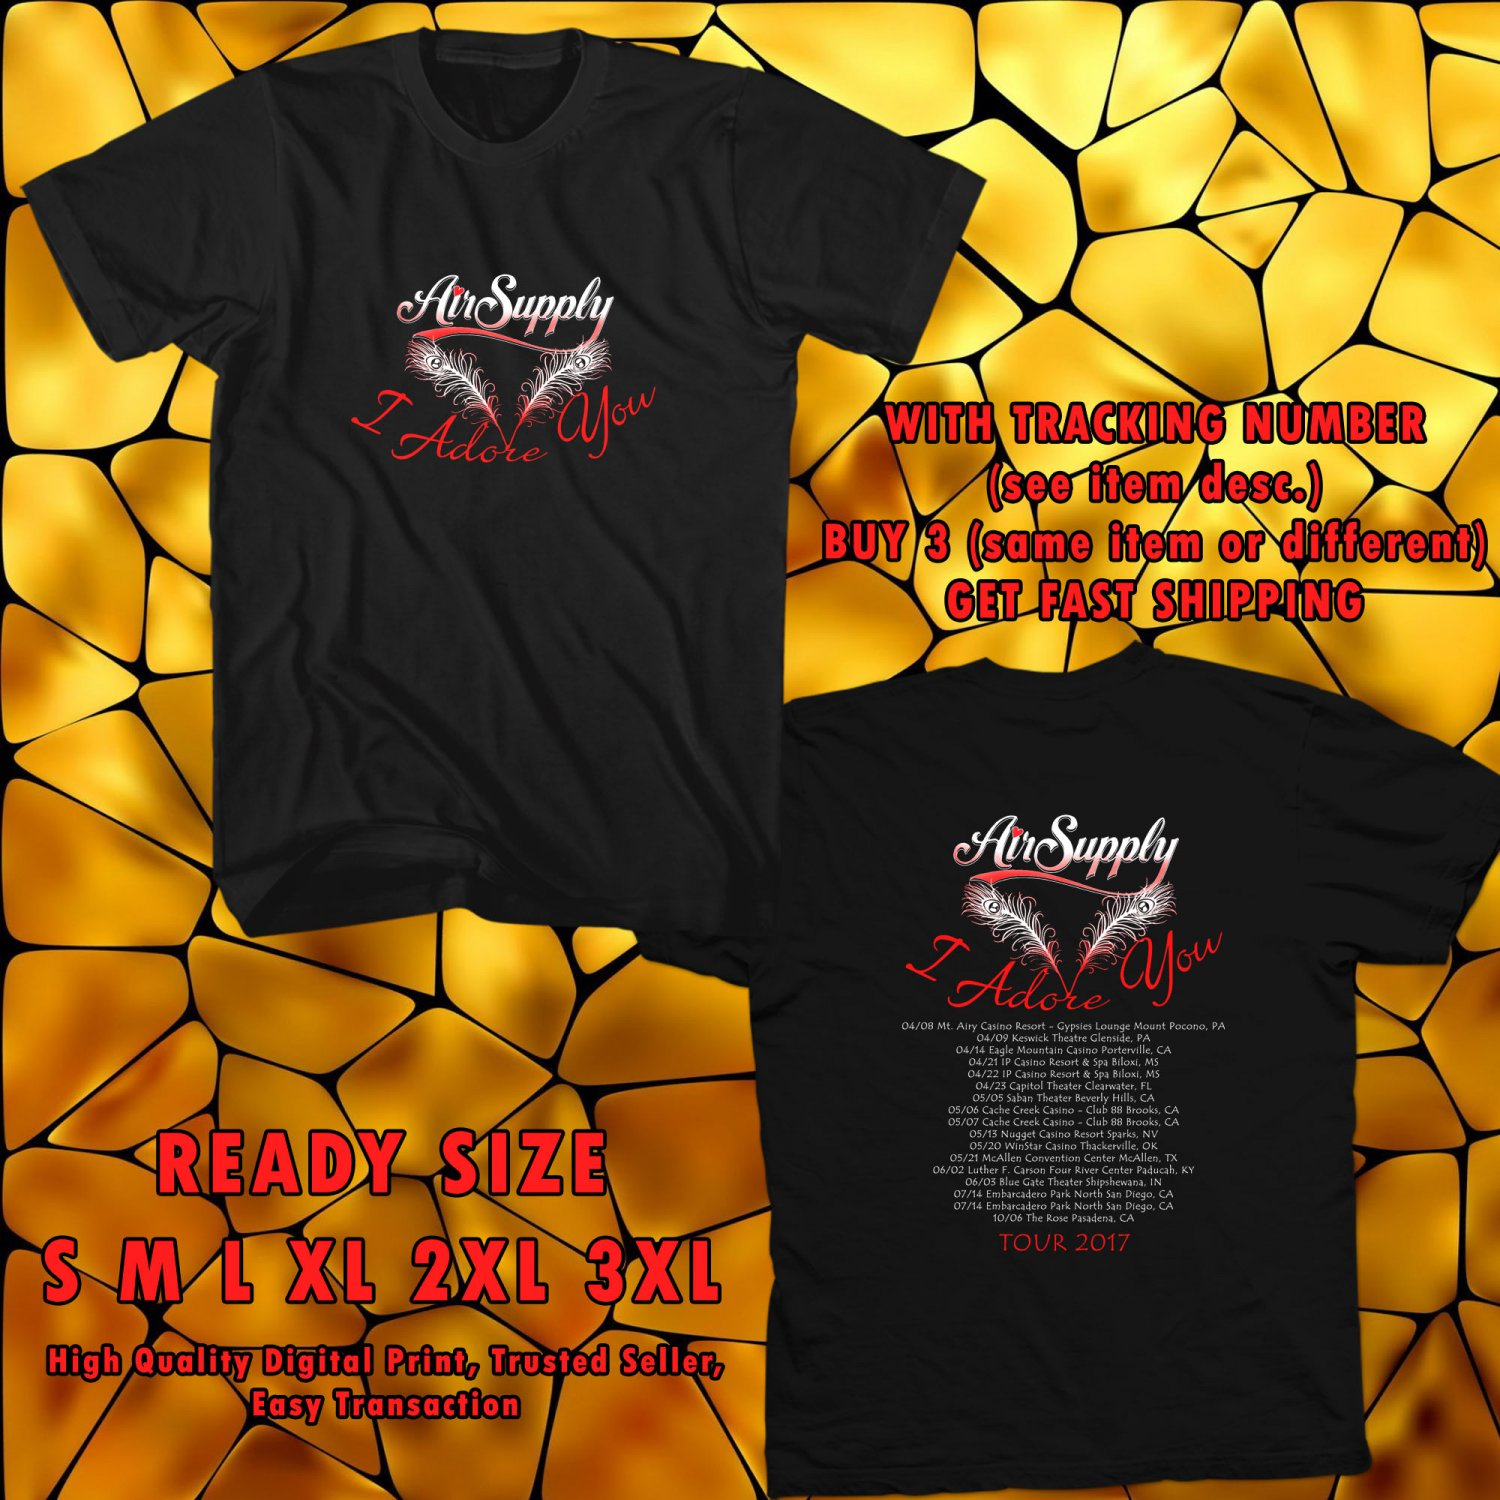 NEW AIR SUPPLY UNITED STATES TOUR 2017 black TEE 2 SIDE DMTR